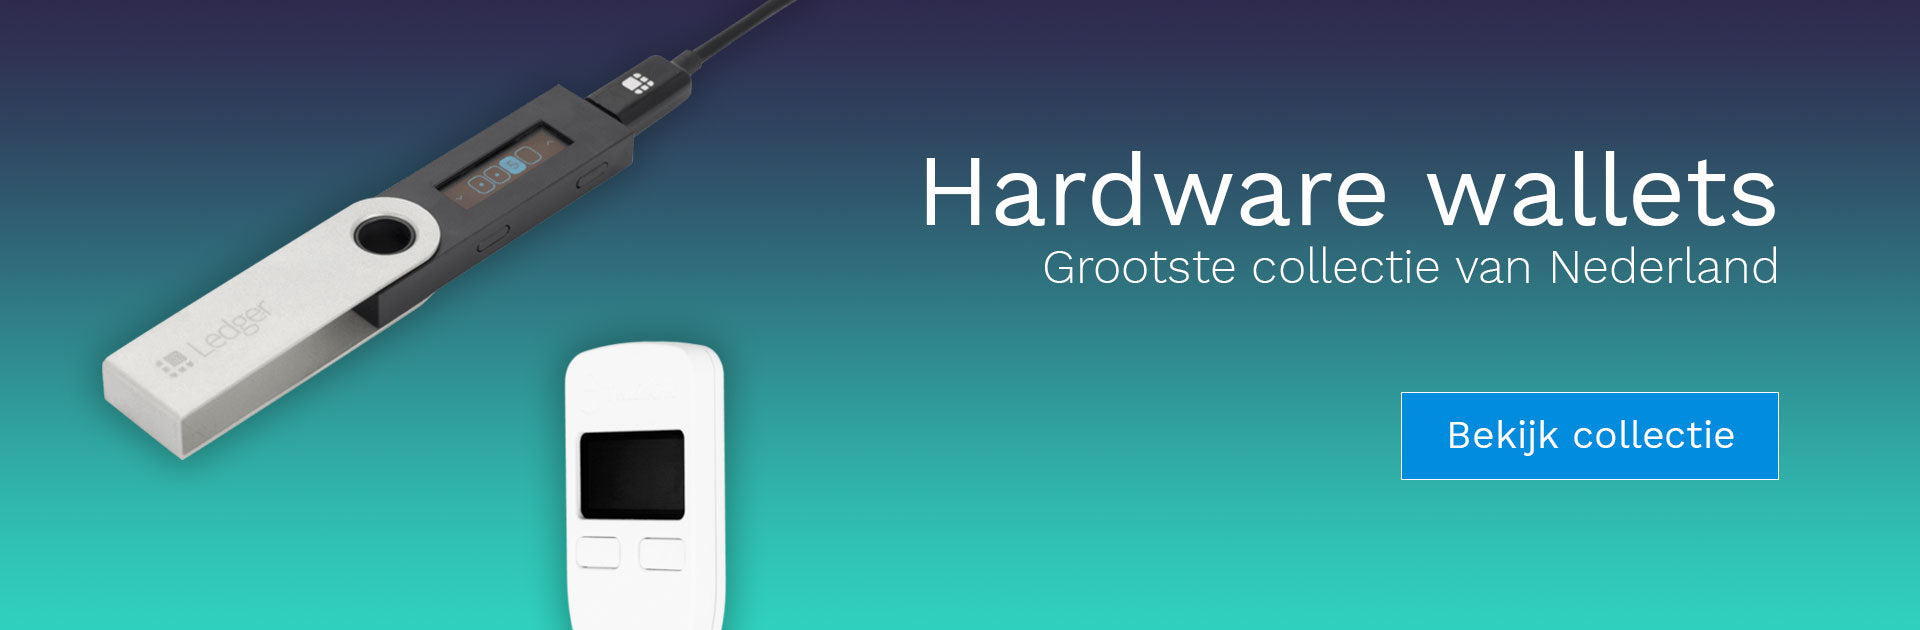 hardware wallets collectie